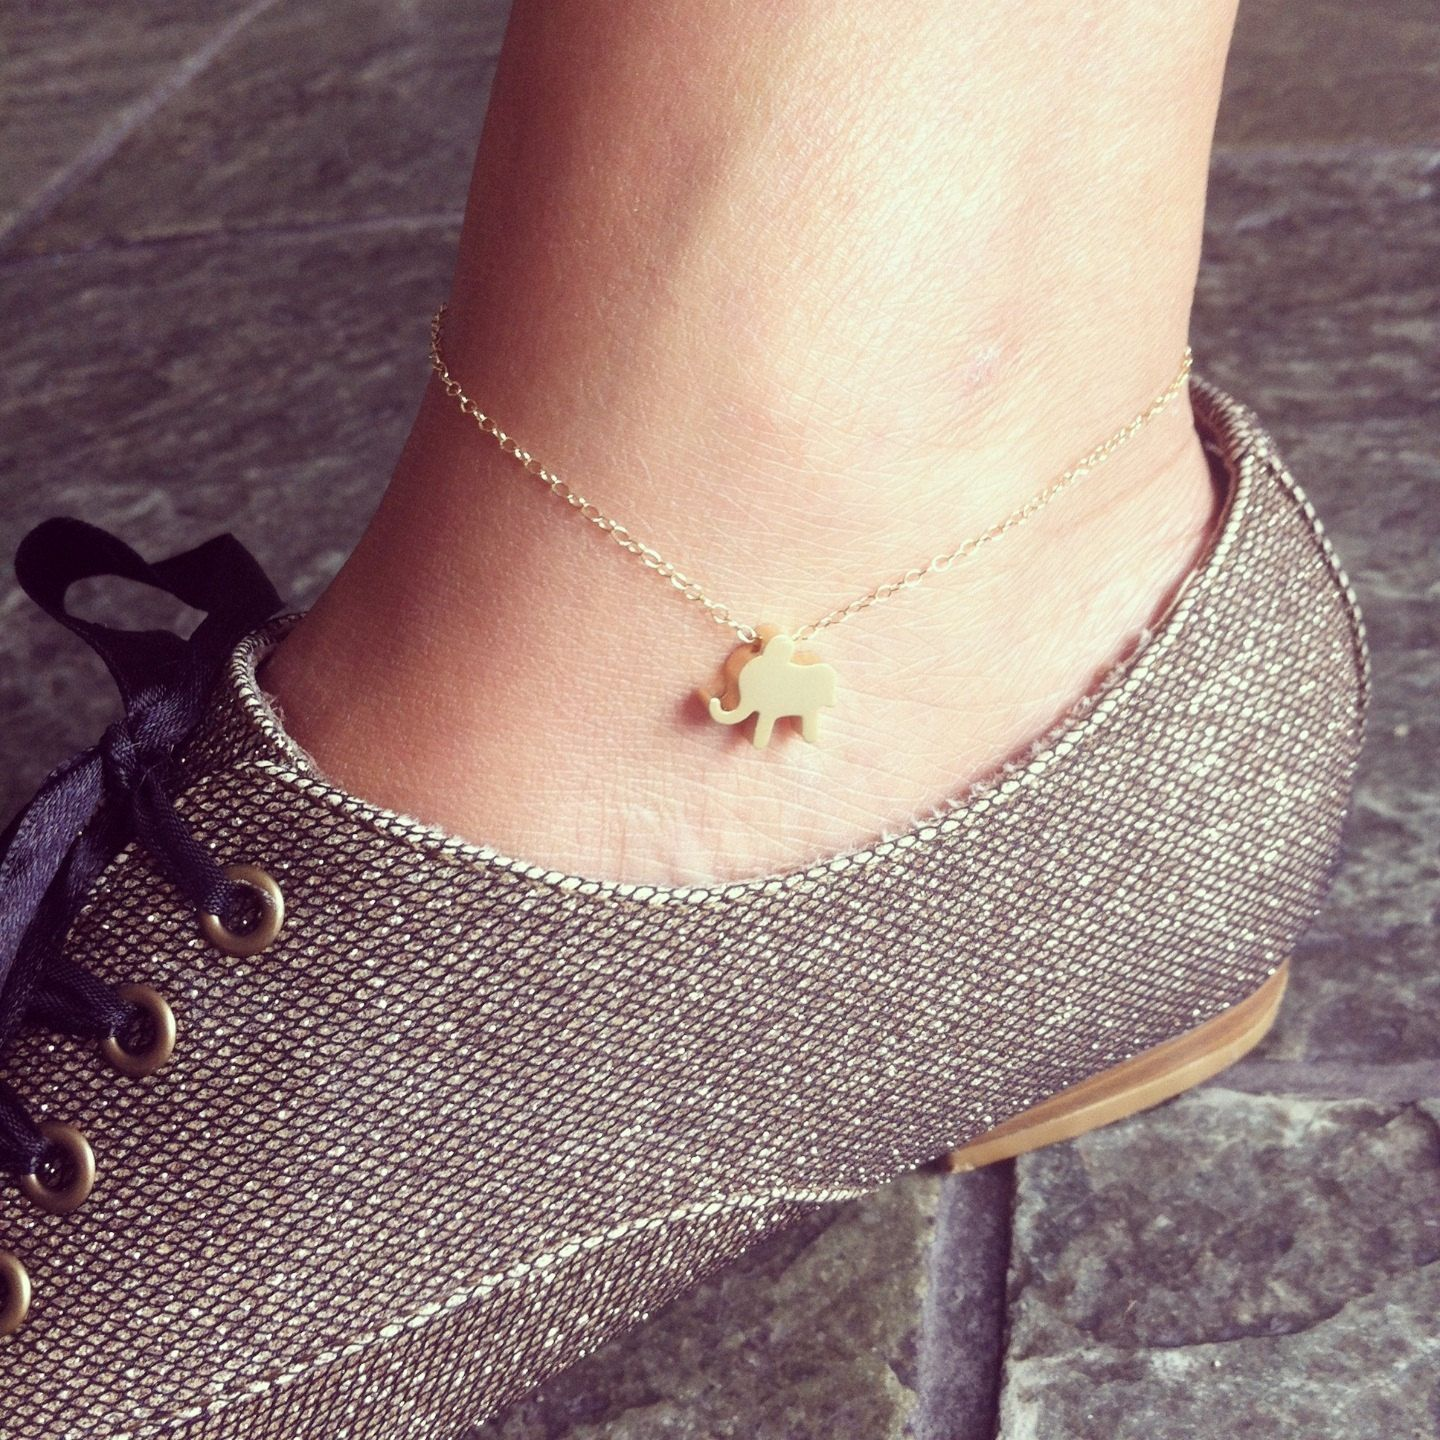 407a6f37395 Items similar to Tiny elephant 14K gold filled anklet